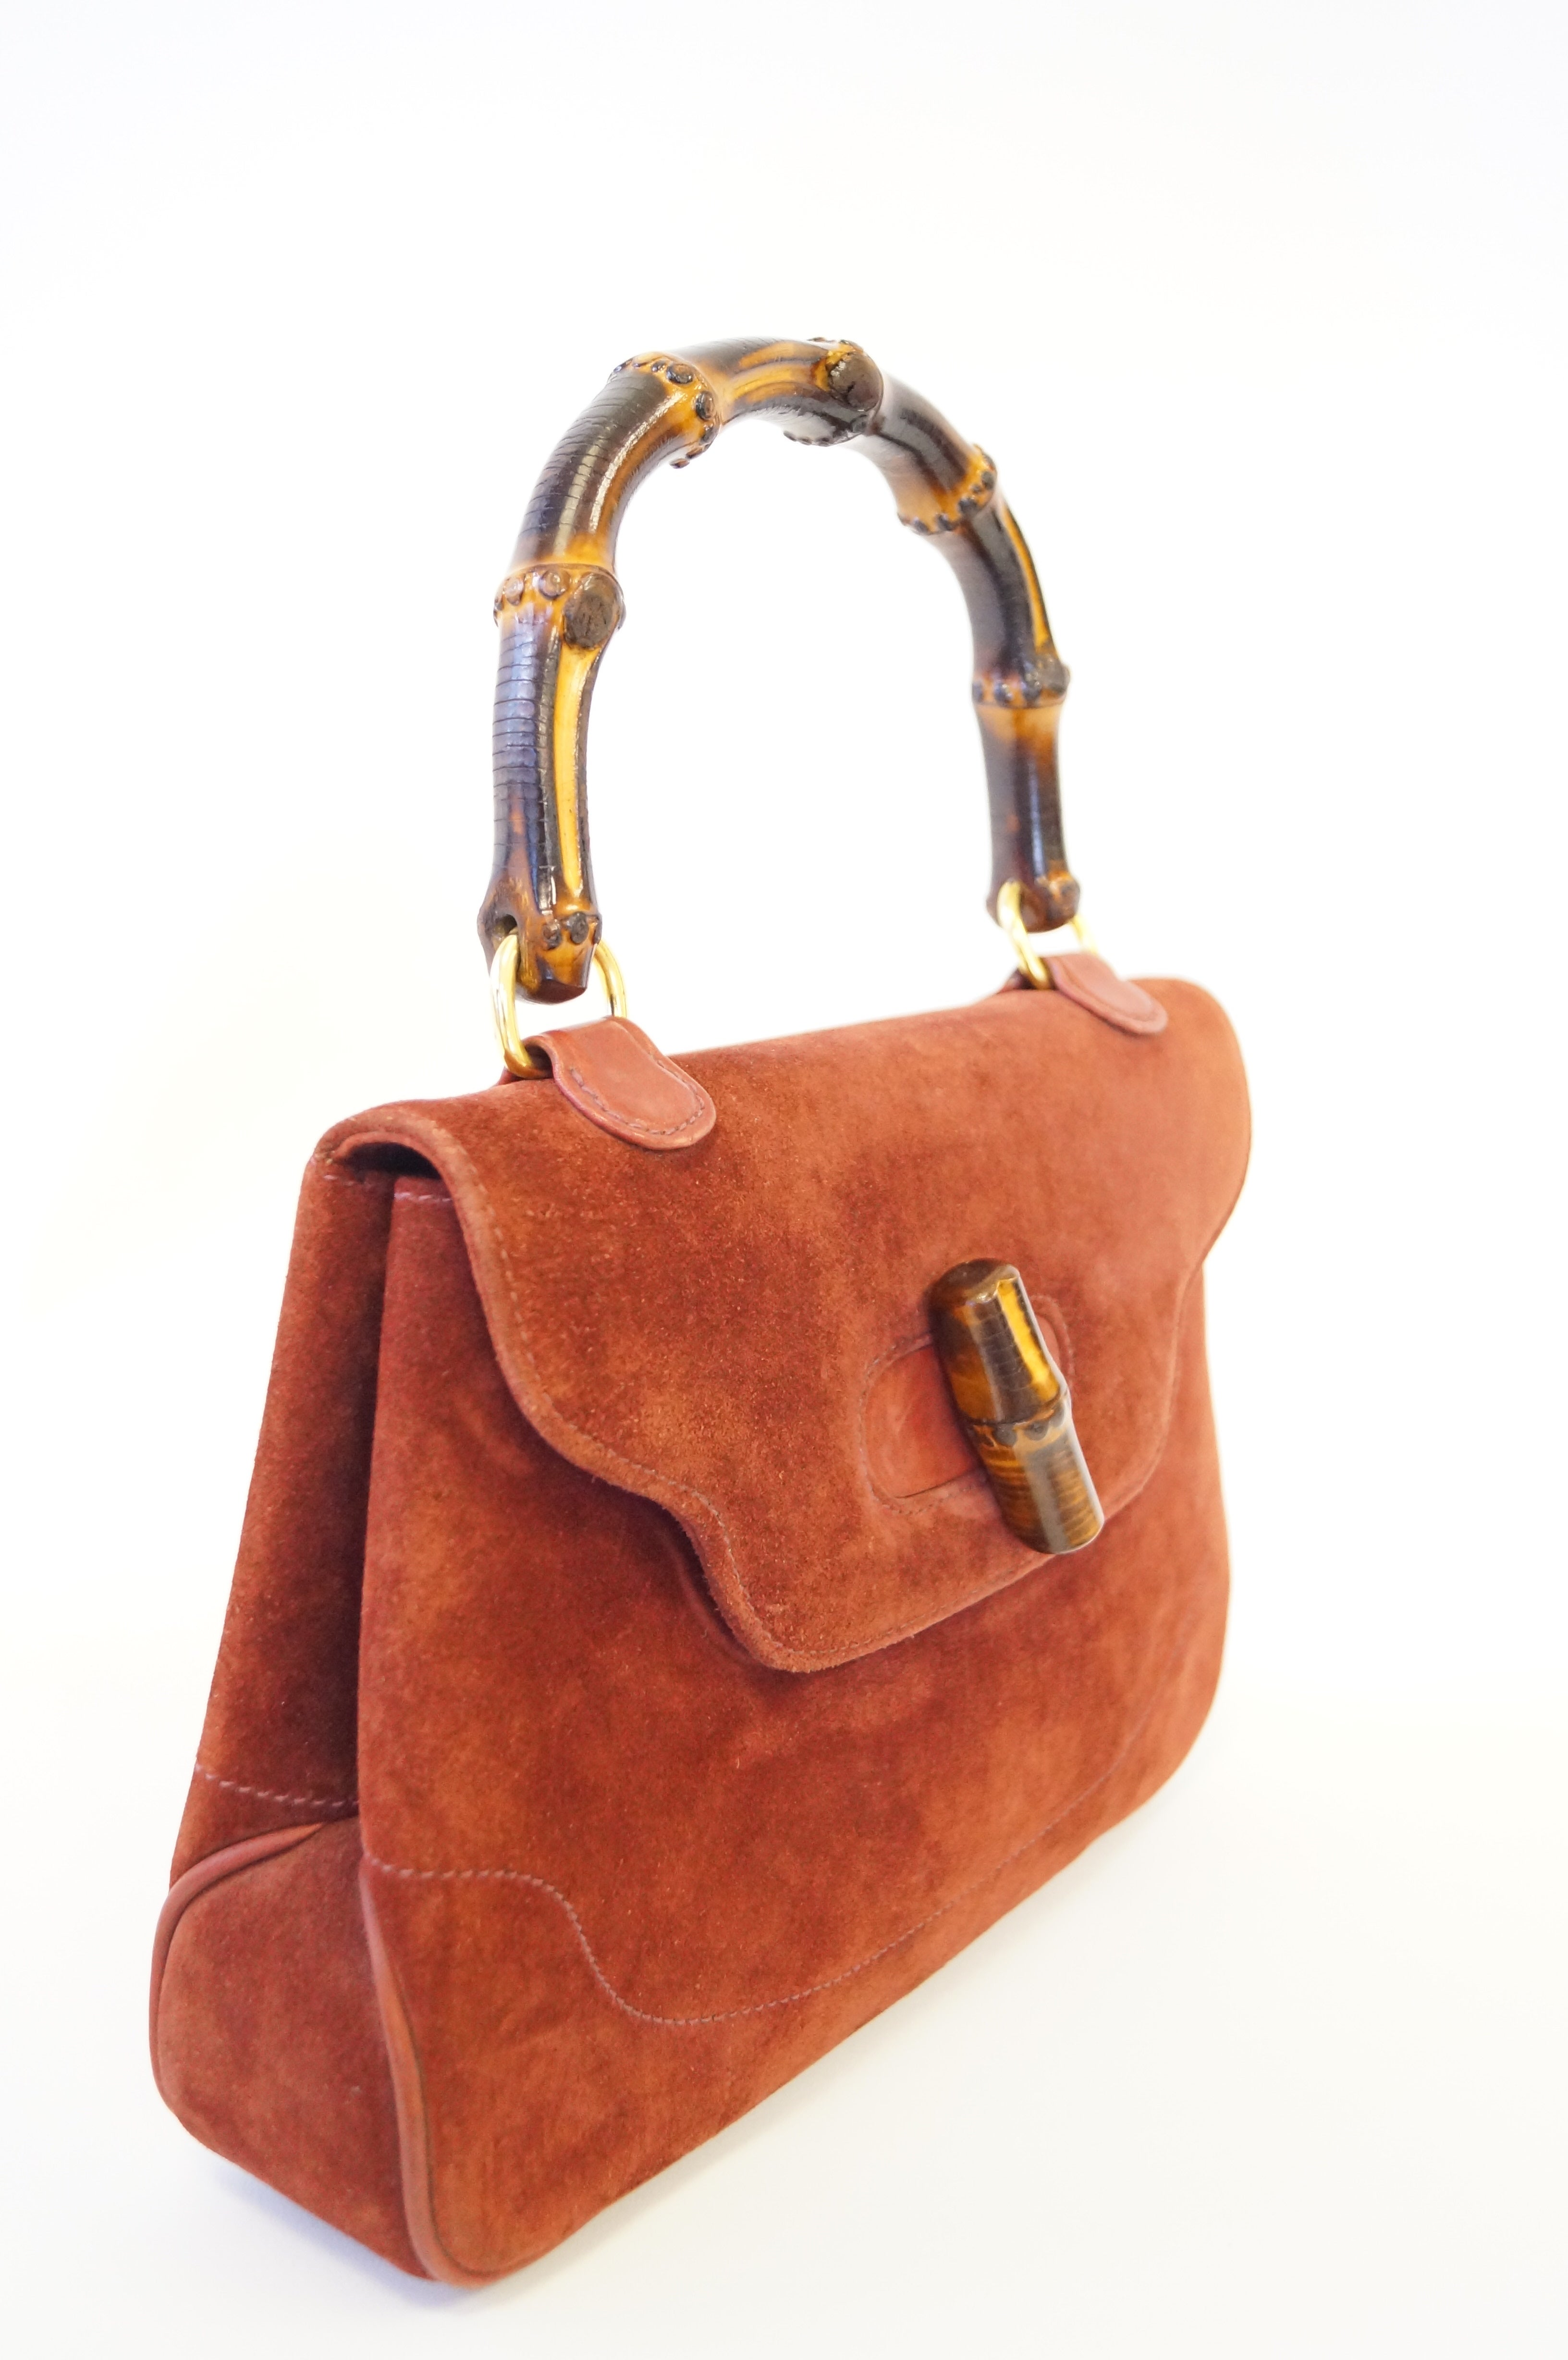 4b78f747ef7e Gucci Rust Colored Suede and Bamboo Purse, 1960s For Sale at 1stdibs